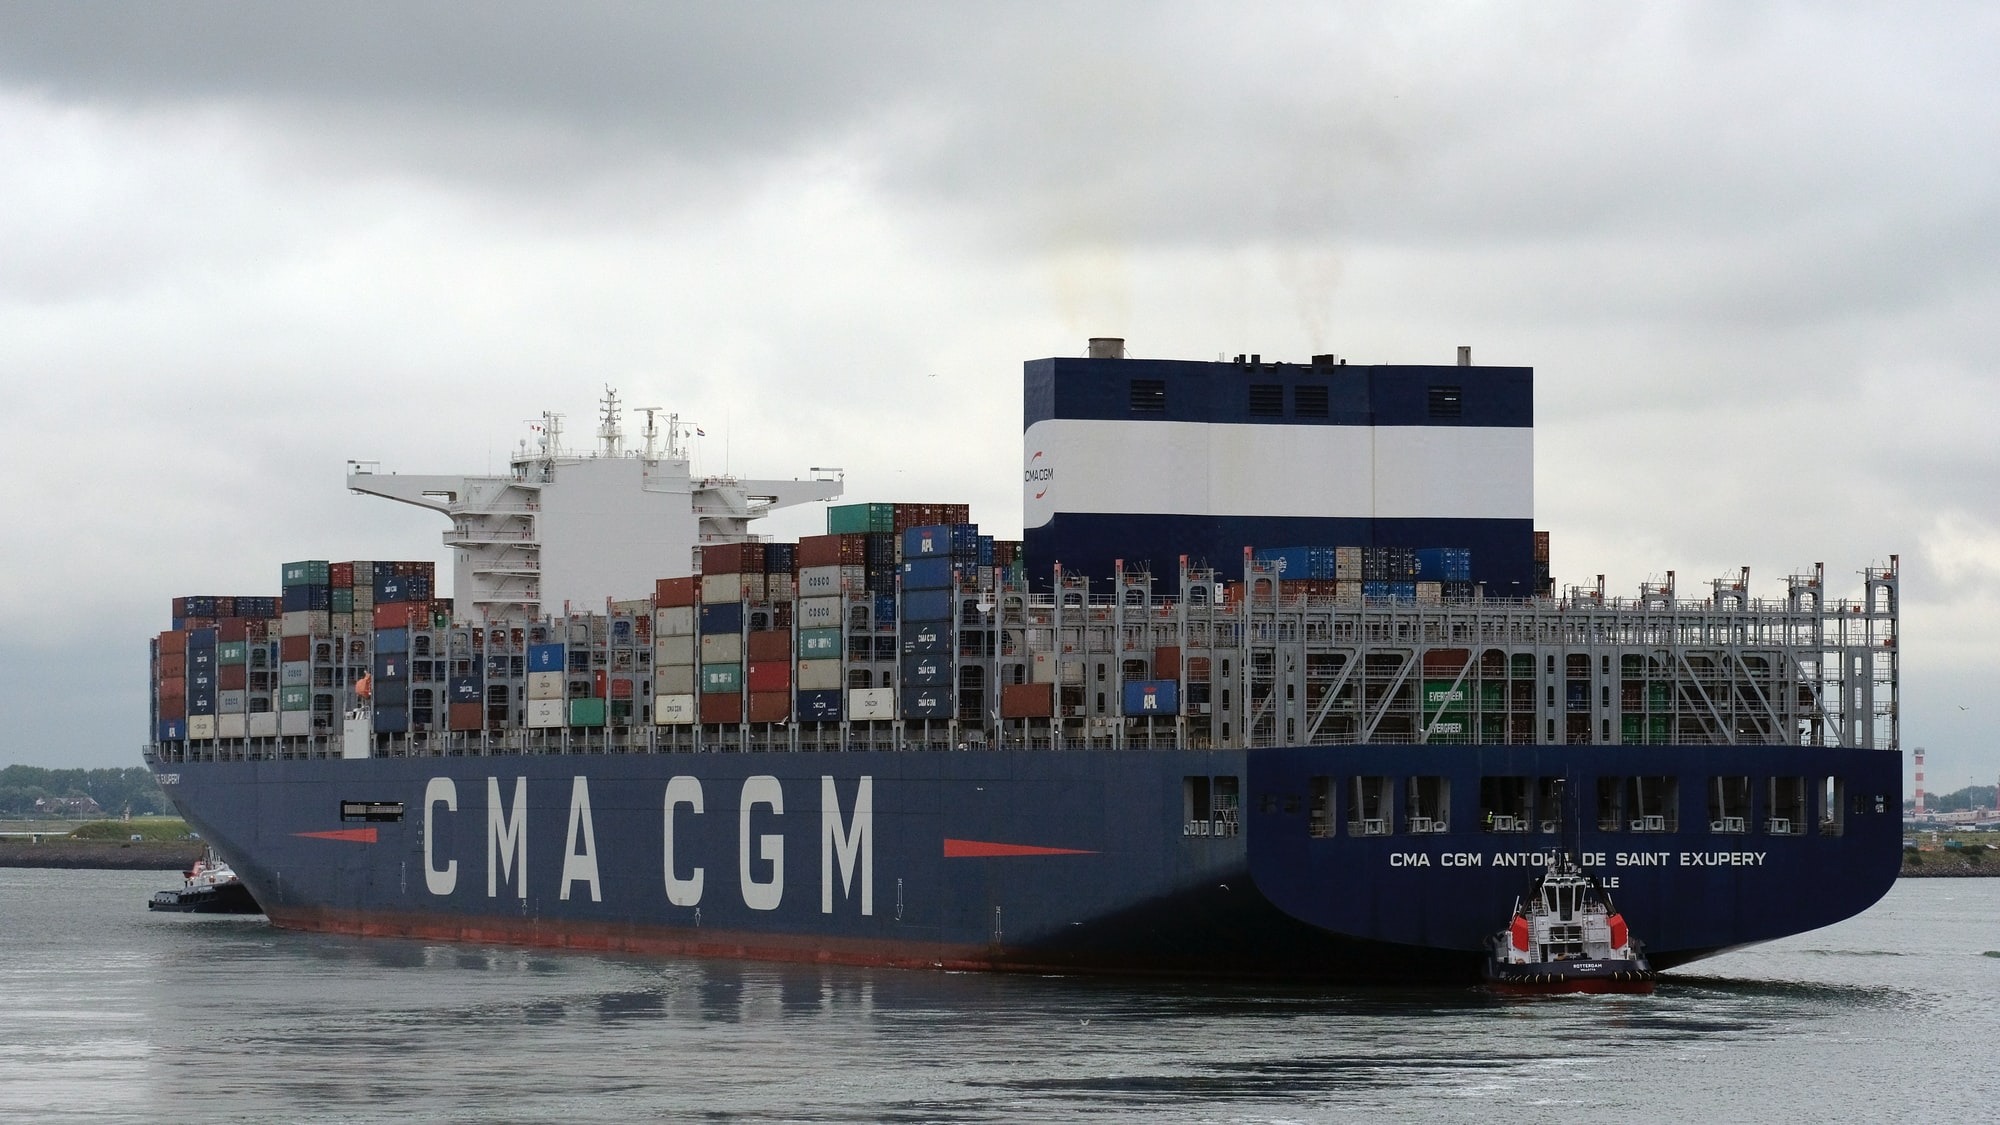 Developer says he can fix the Suez canal problem by adding more containers onto the ship